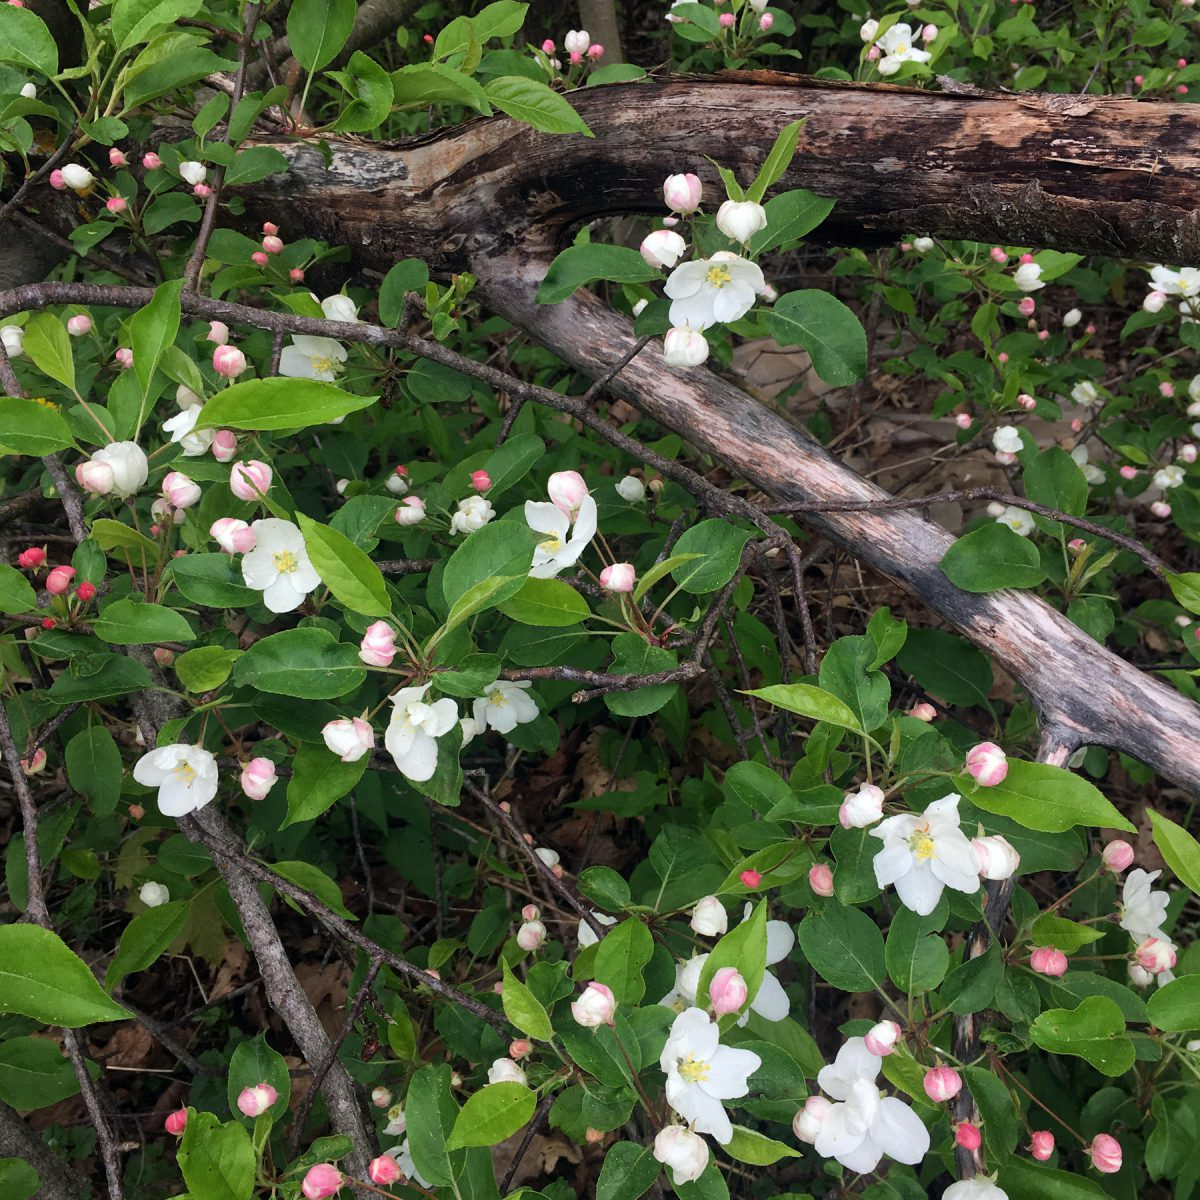 Dead branches covered with fresh apple blossoms